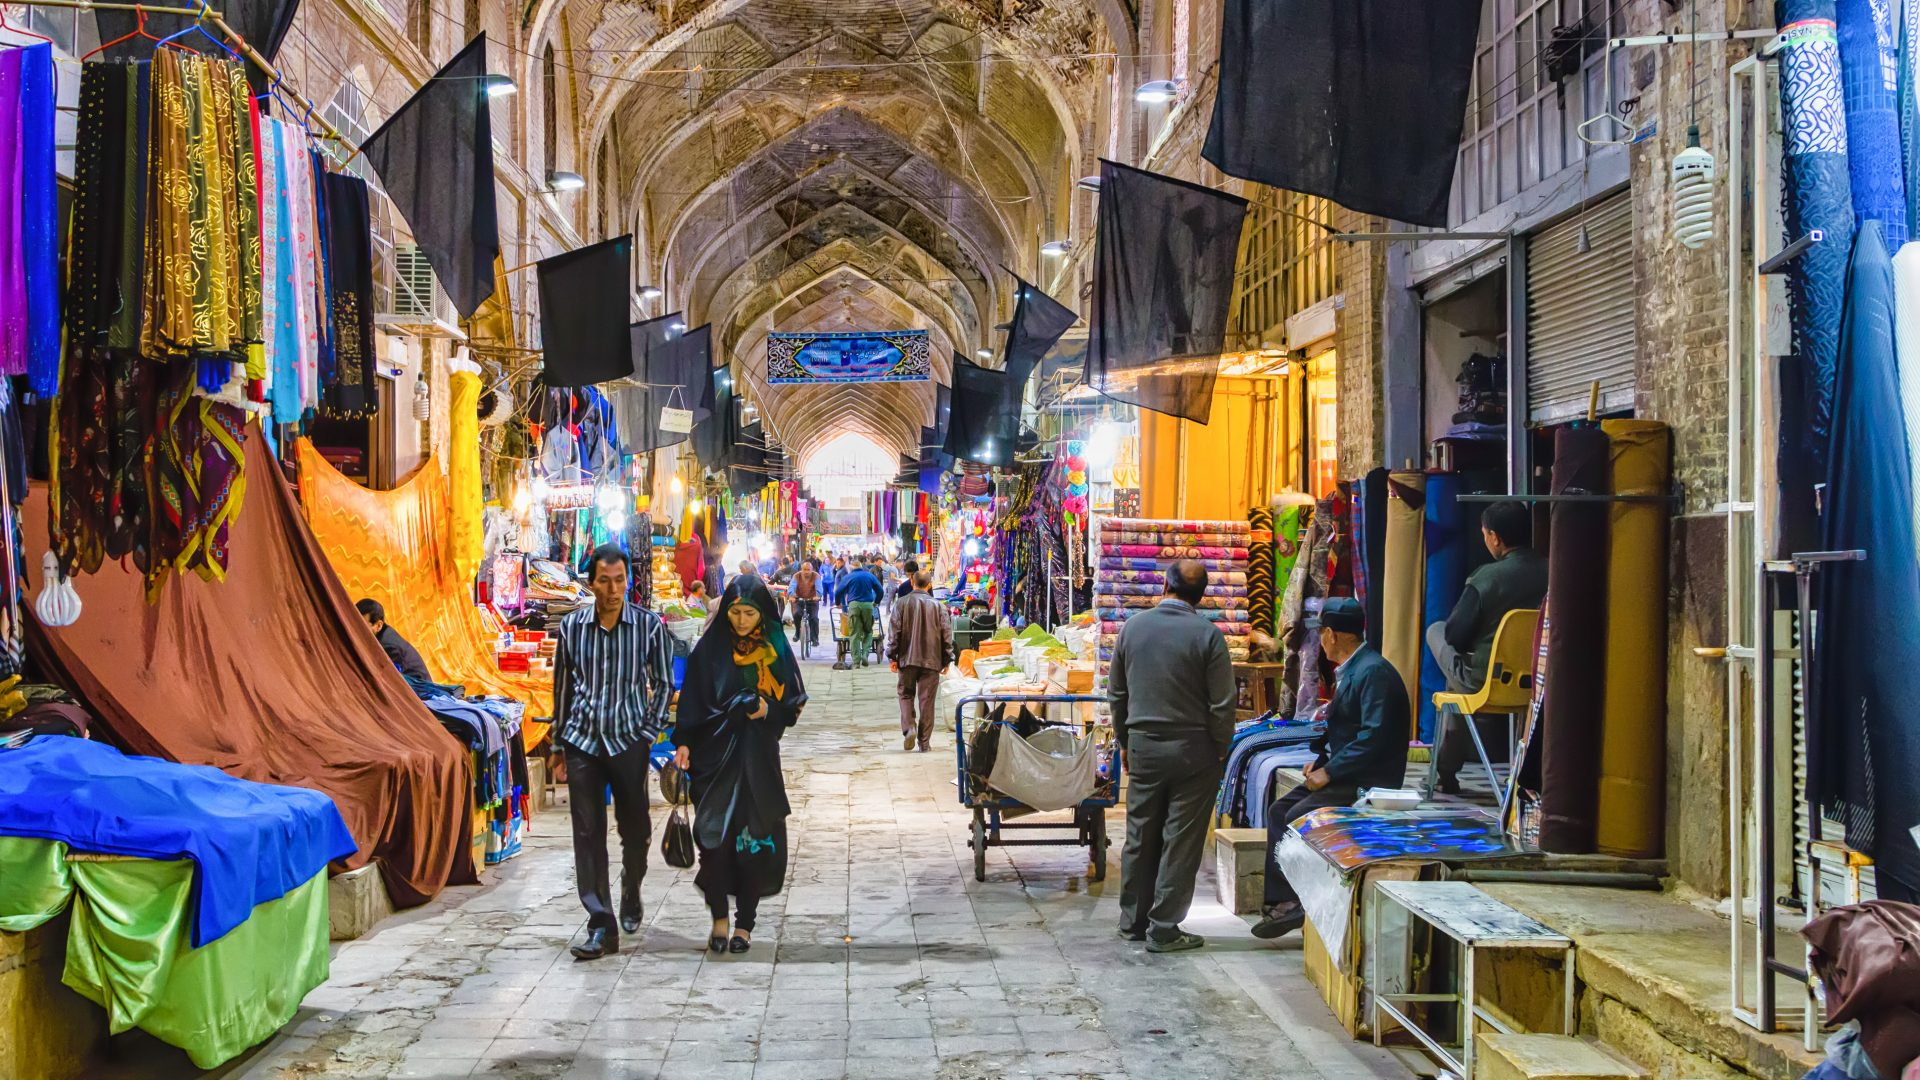 Traditional Iranian bazaar in Shiraz.